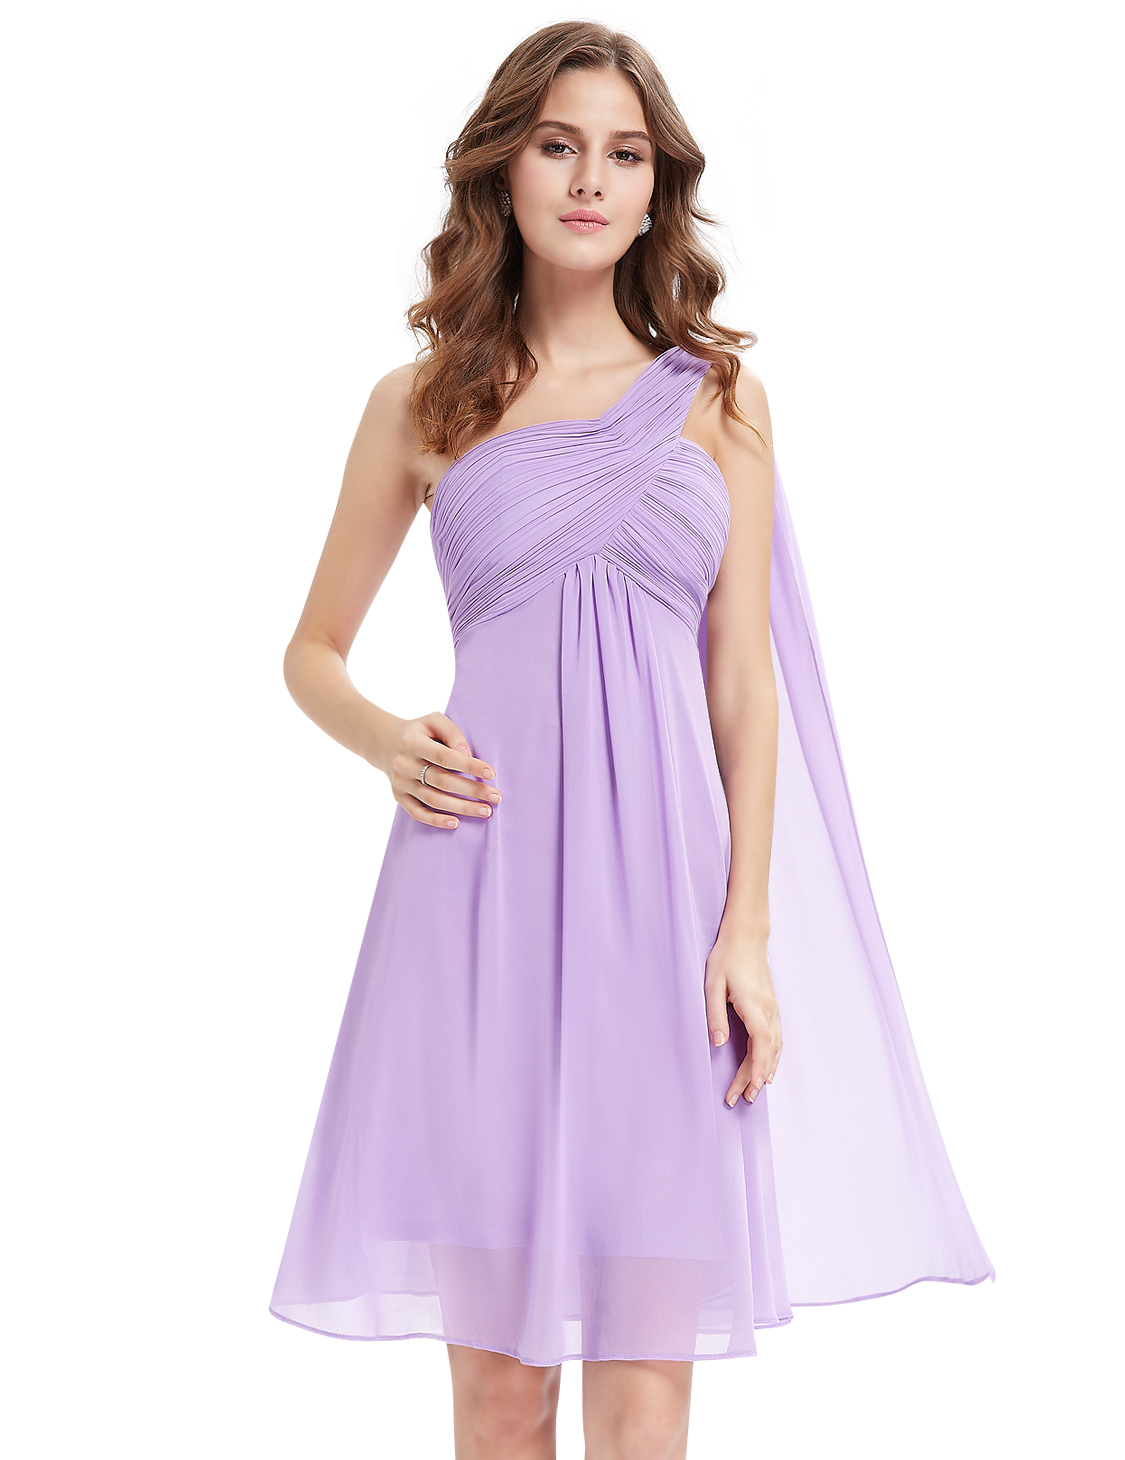 Short Prom Dresses Uk Ebay - Formal Dresses